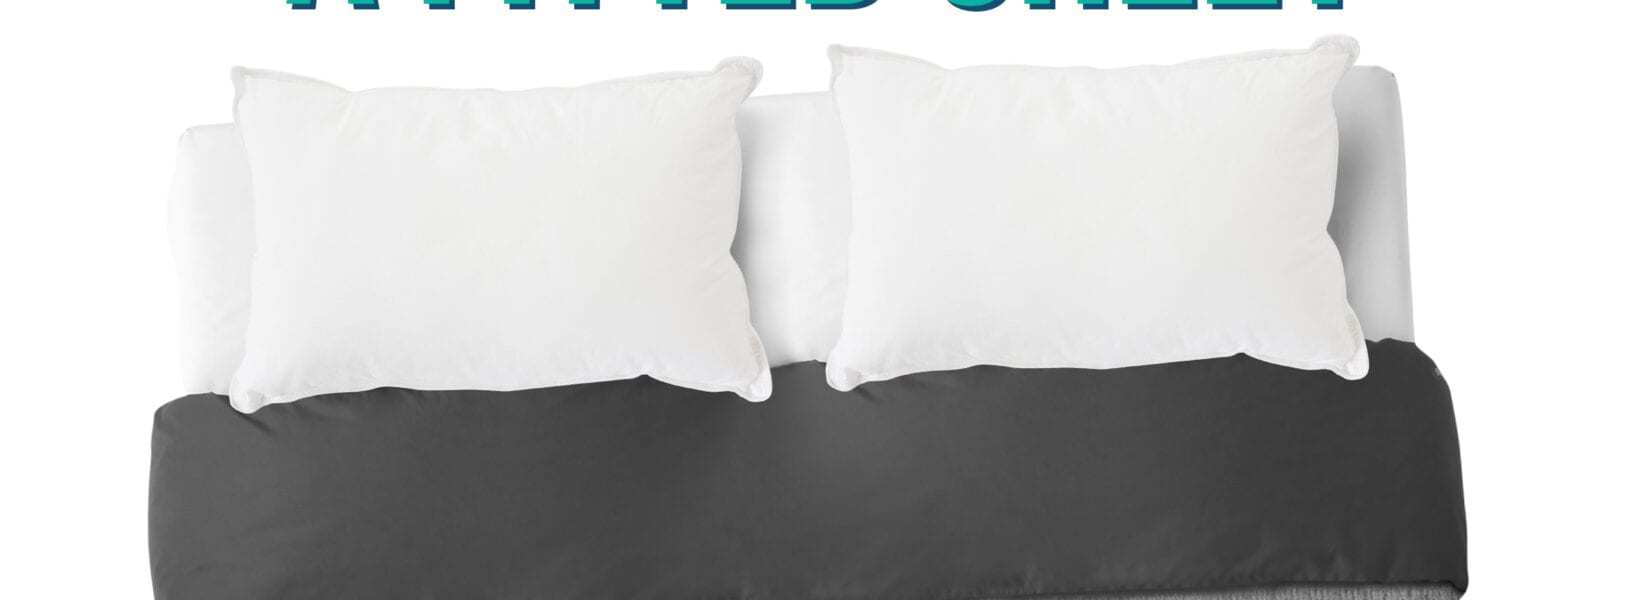 How to Fold a Fitted Sheet – 3 Easy Ways!